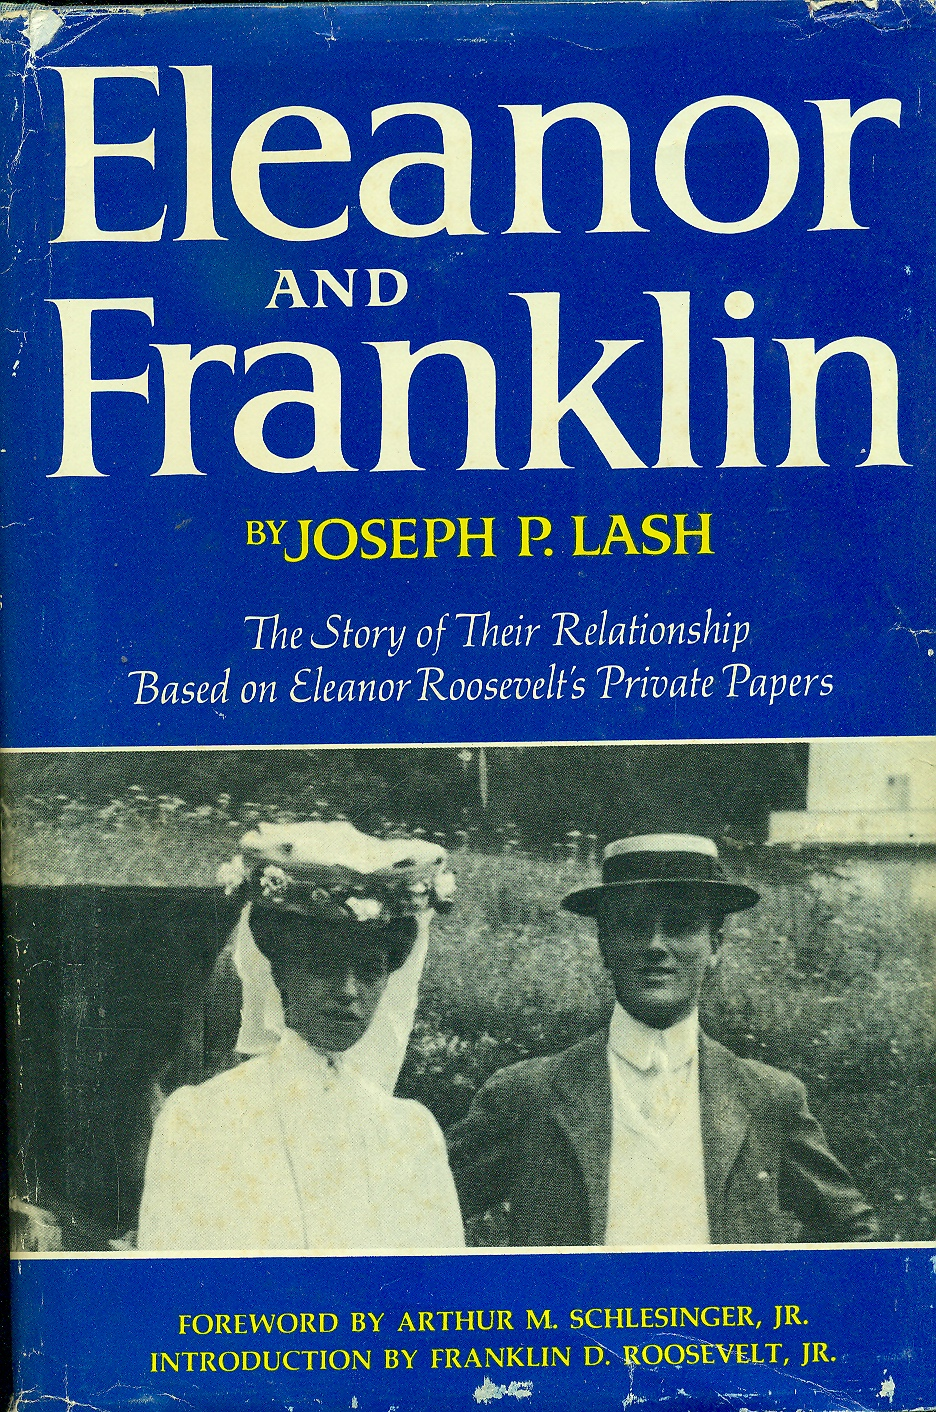 Image for Eleanor And Franklin The Story of Their Relationship, Based on Eleanor Roosevelt's Private Papers